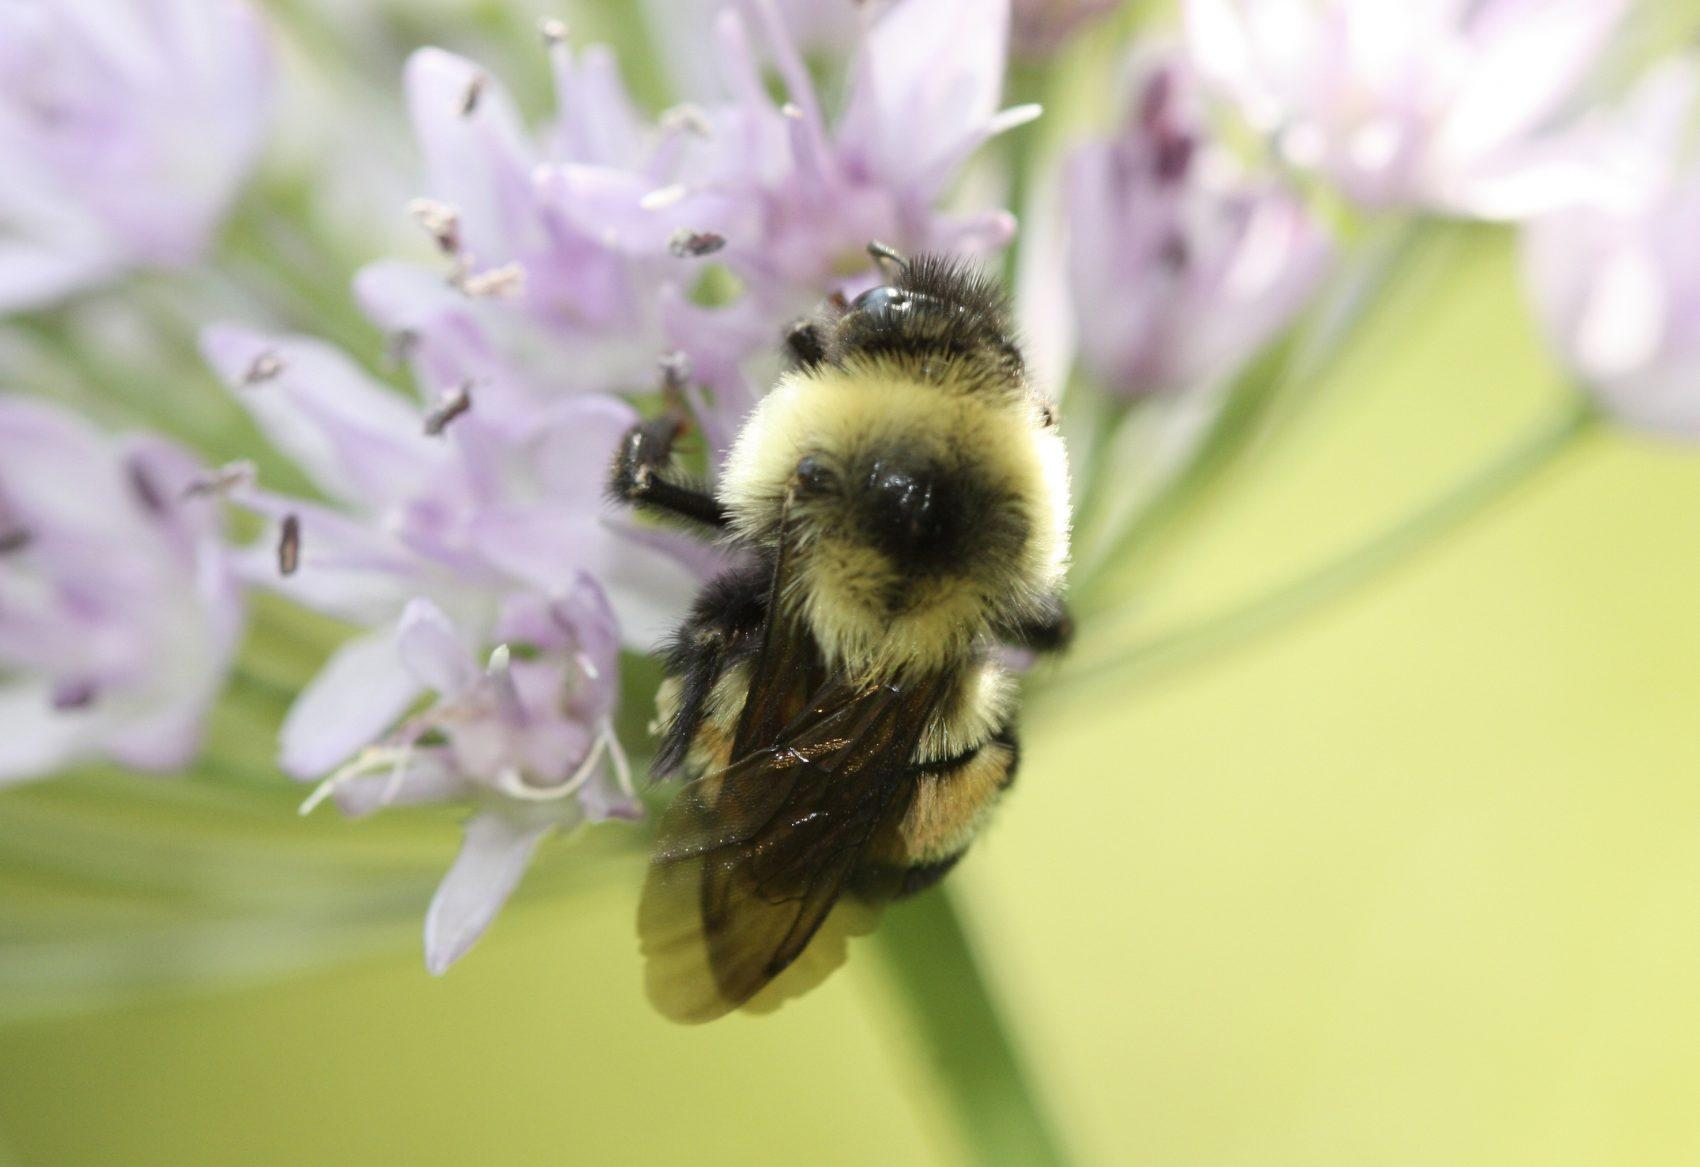 Endangered Bumble Bees The Focus Of Chicago Groups' Protection Efforts